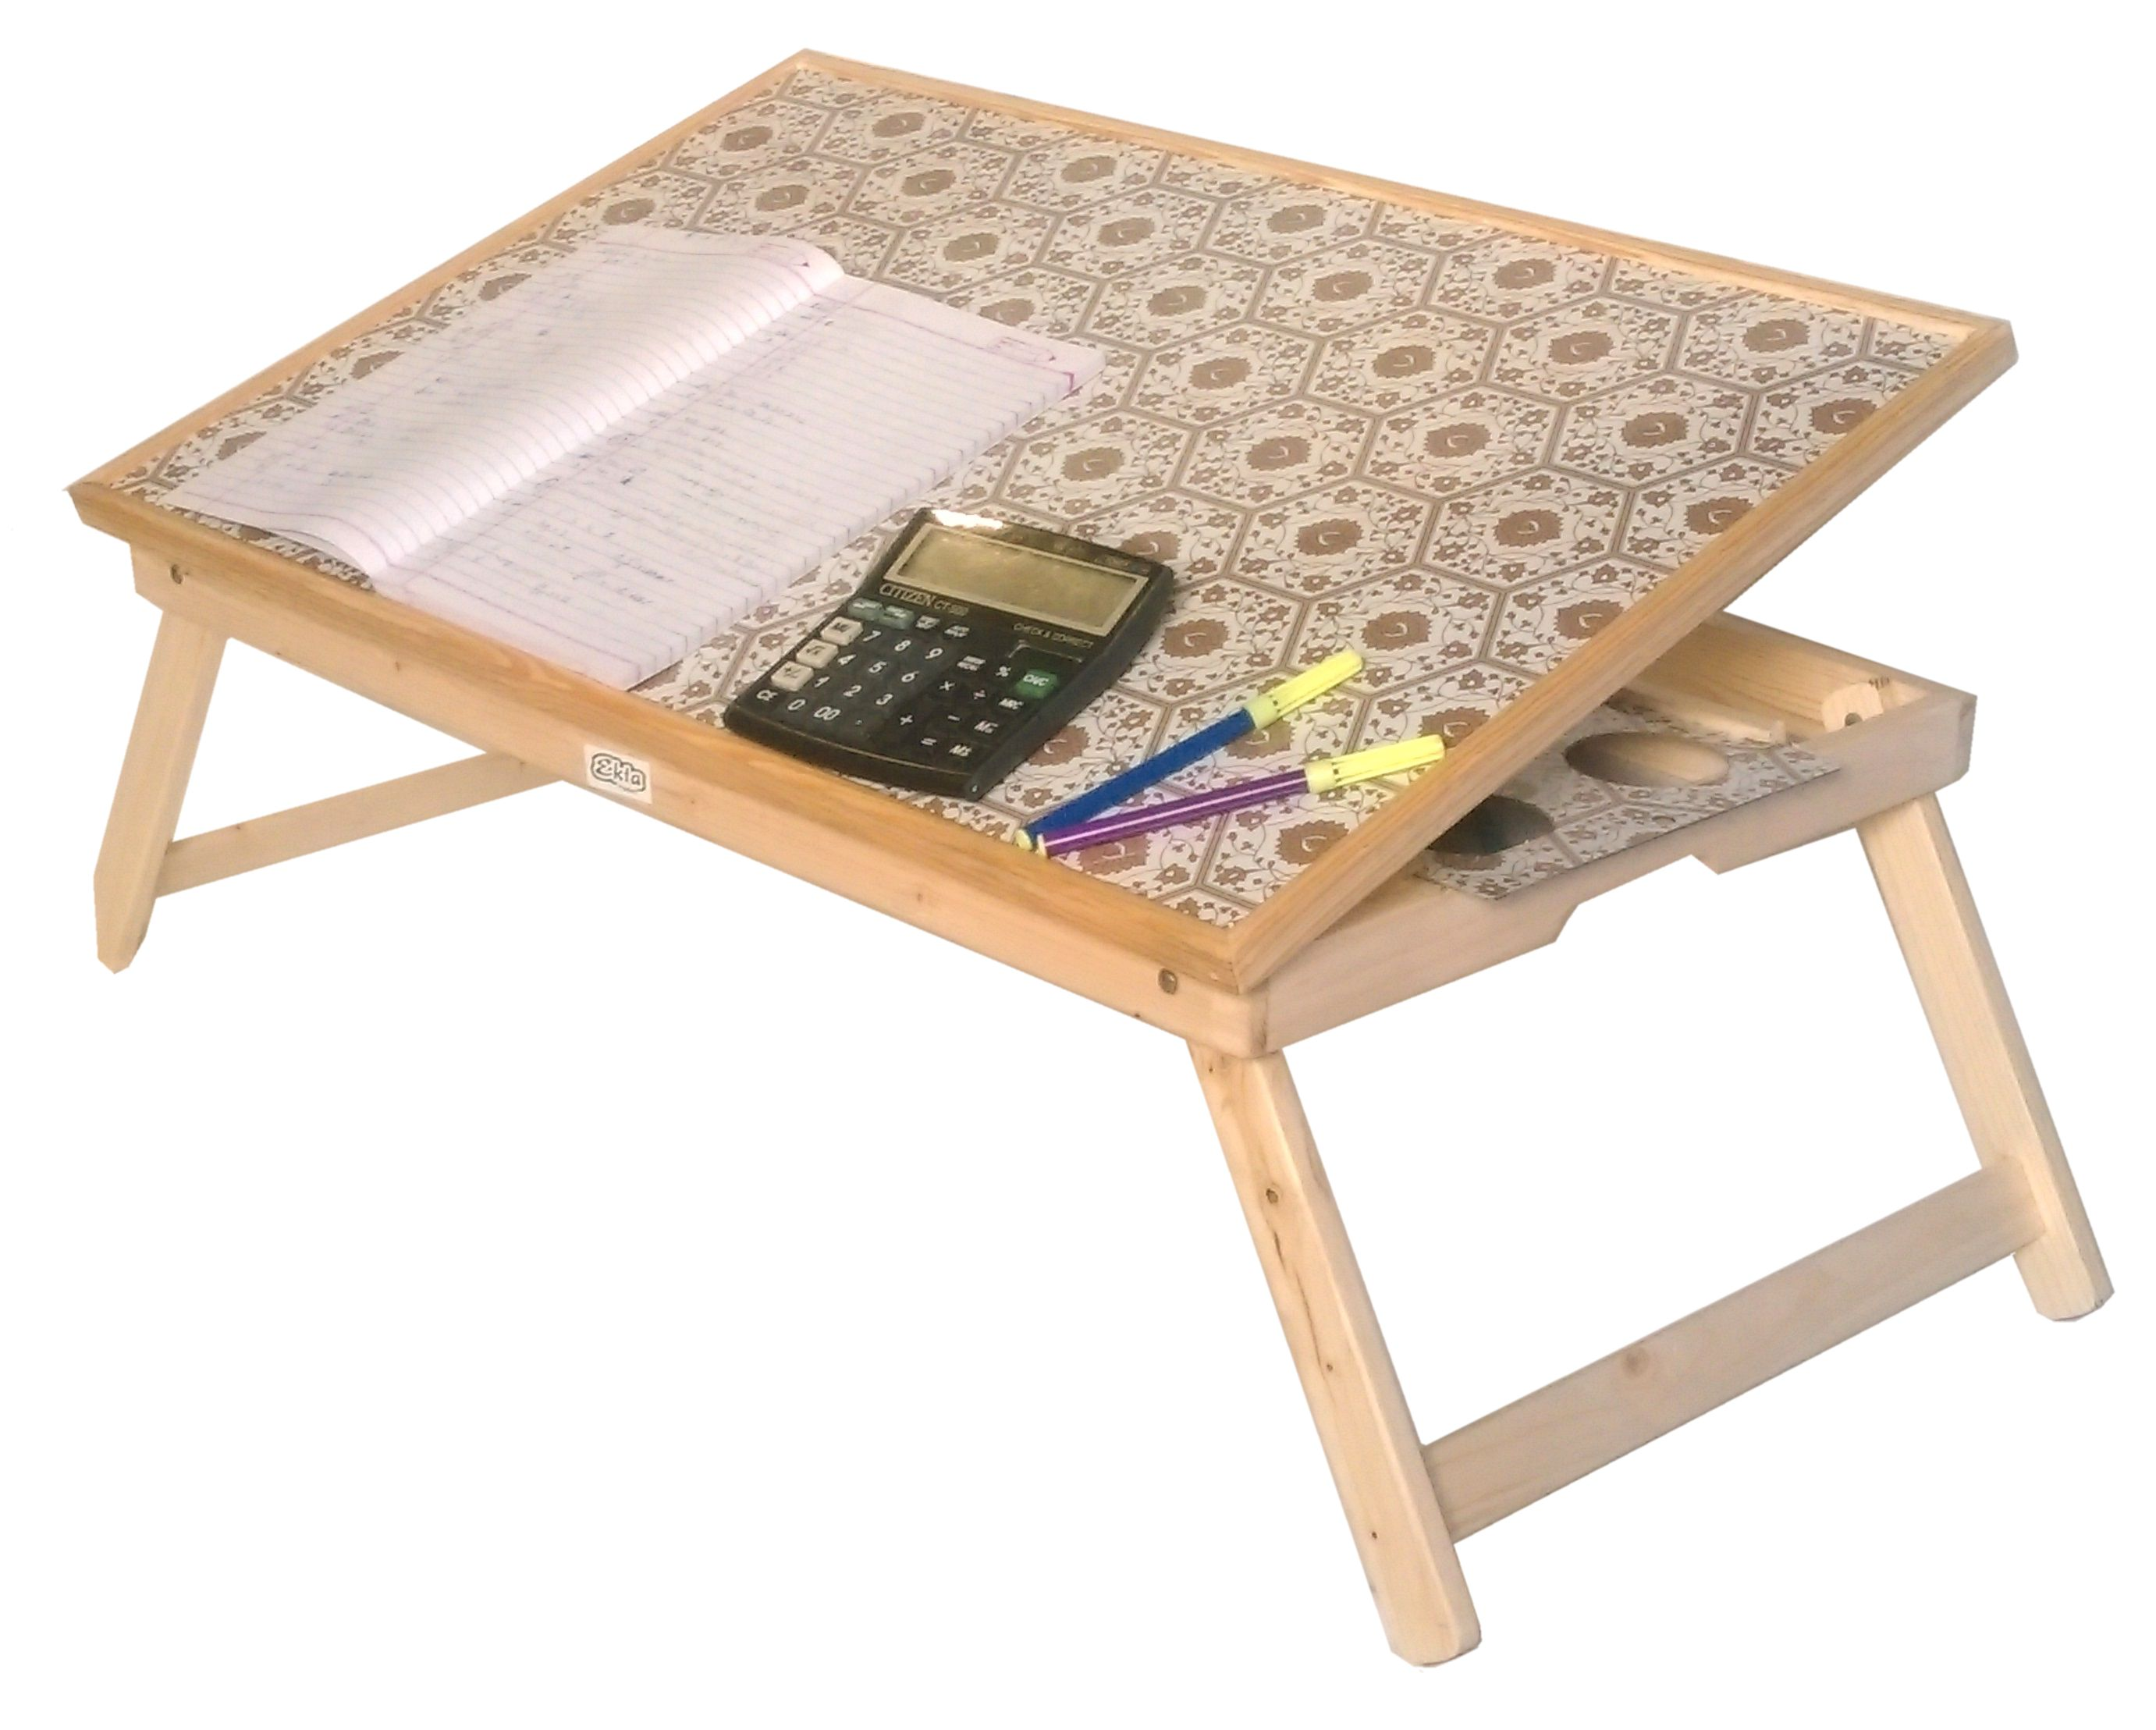 And Supplier Of Folding Study Table In Mumbai Maharashtra India. Full resolution‎  pic, nominally Width 2763 Height 2217 pixels, pic with #284475.